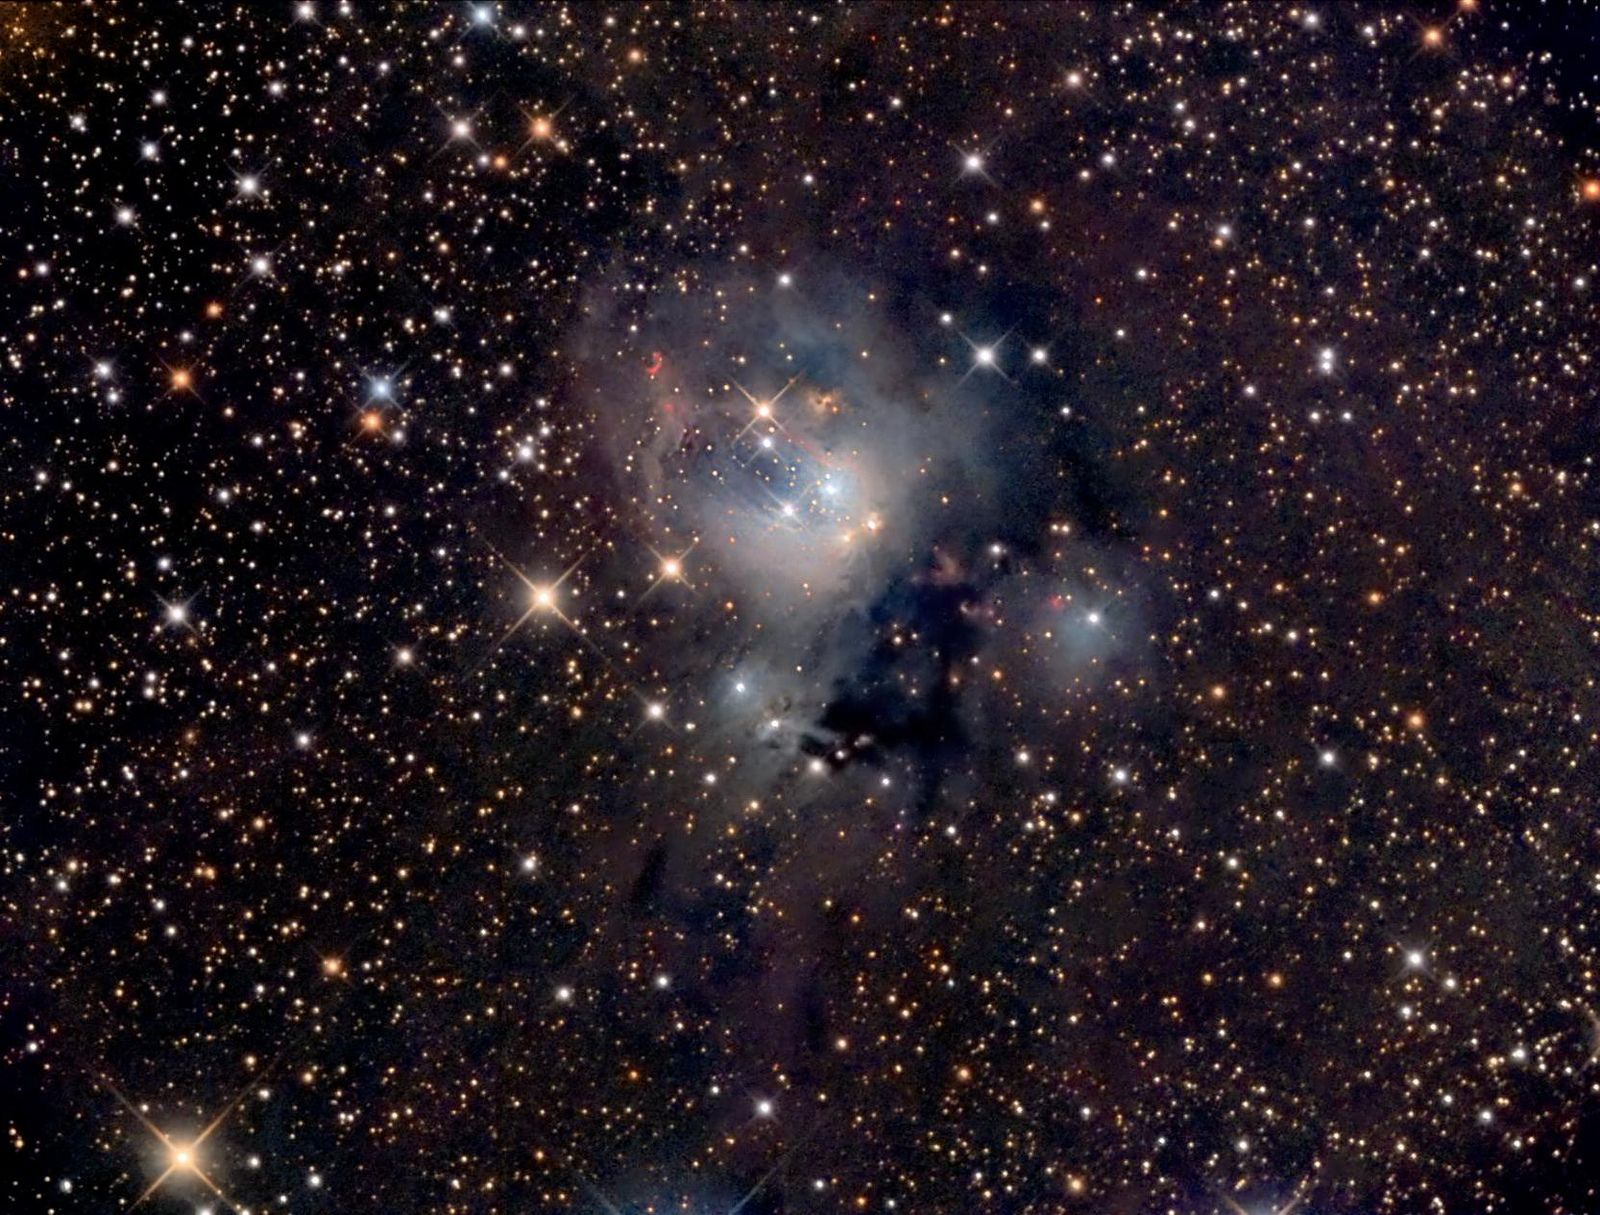 https://flic.kr/p/T4LxAs | NGC 7129 | Reflection nebula about 3300 light years away in the constellation Cepheus. The brighter stars form a young cluster responsible for lighting the nebula. A small, circular red arc can be seen along with a large whispy arc below it that is formed by jets from the bright stars in the center.